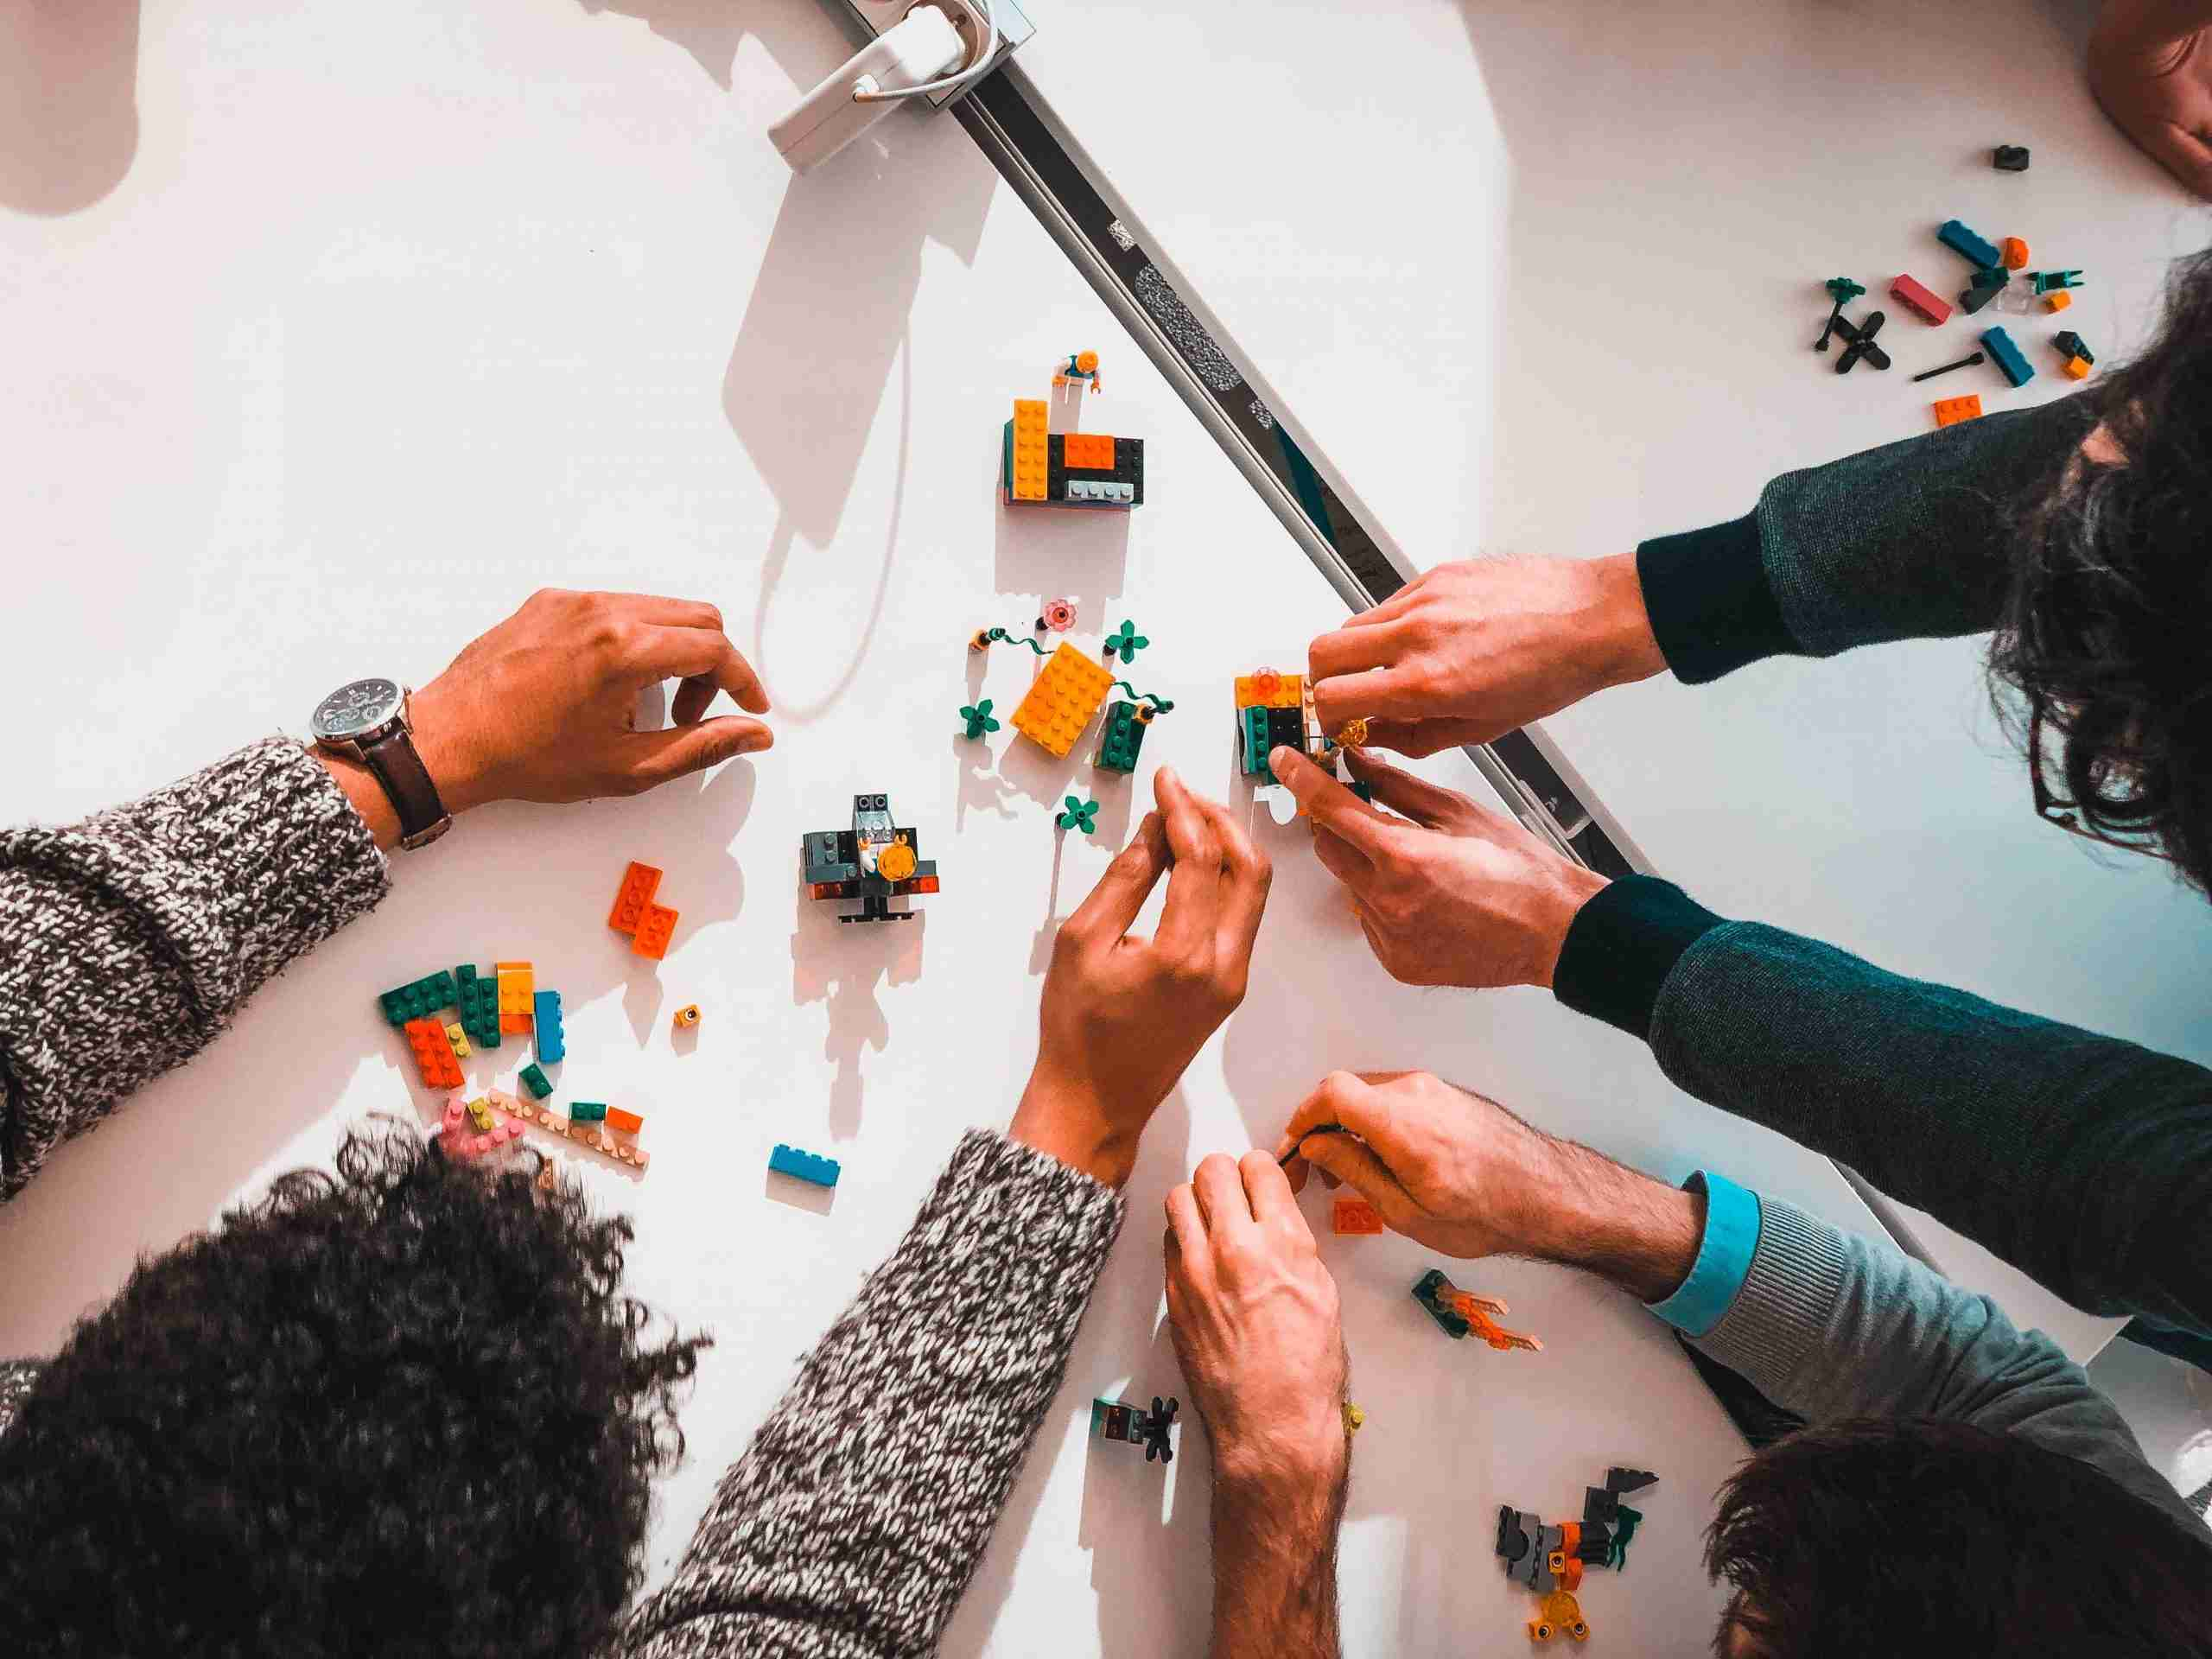 An image of a team working together to build using lego